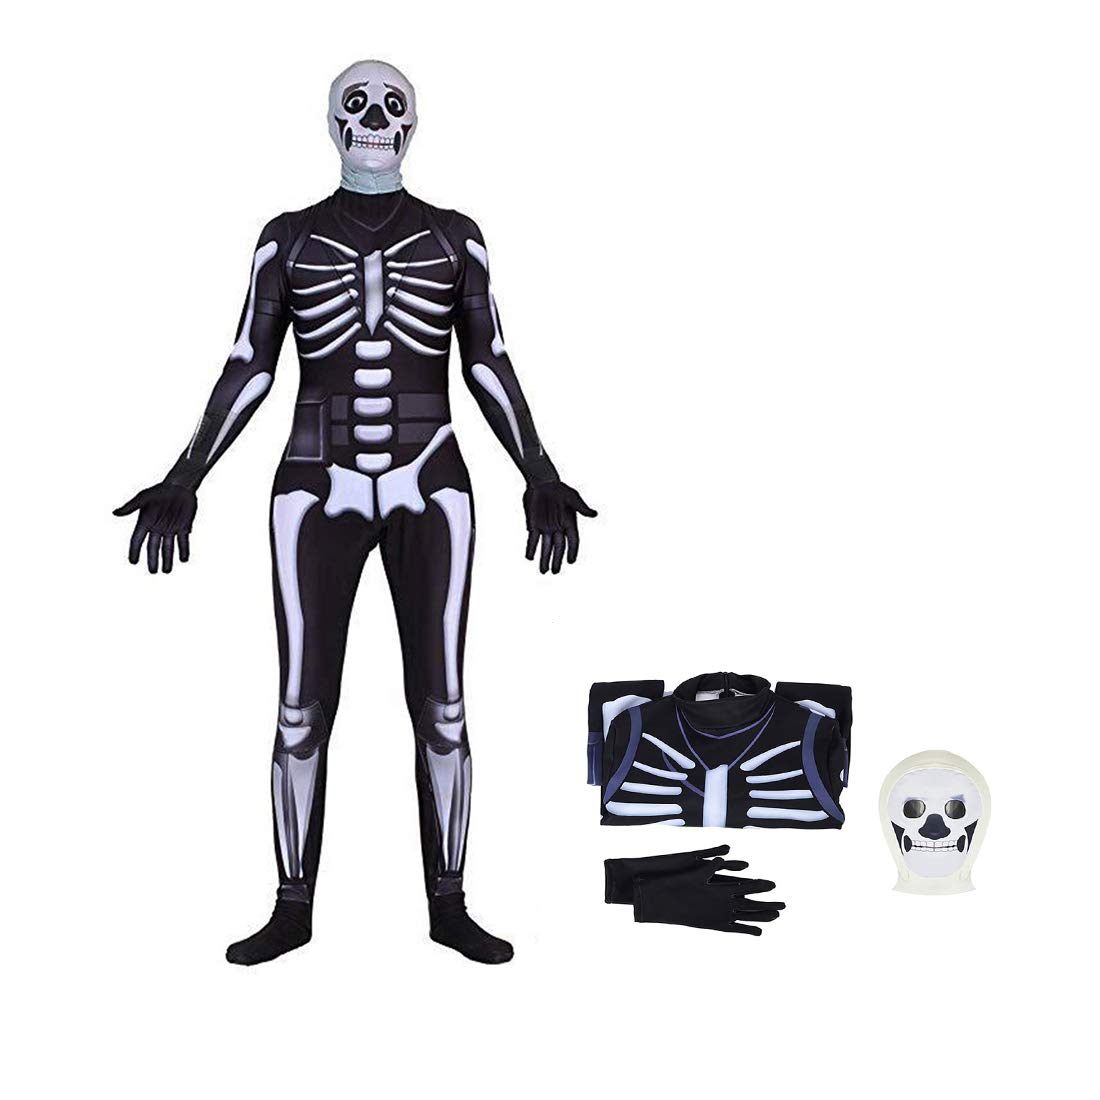 Comtervi Skull Trooper Costume Halloween Kids Zentai Bodysuit Cosplay Best Gift for Child Dress up